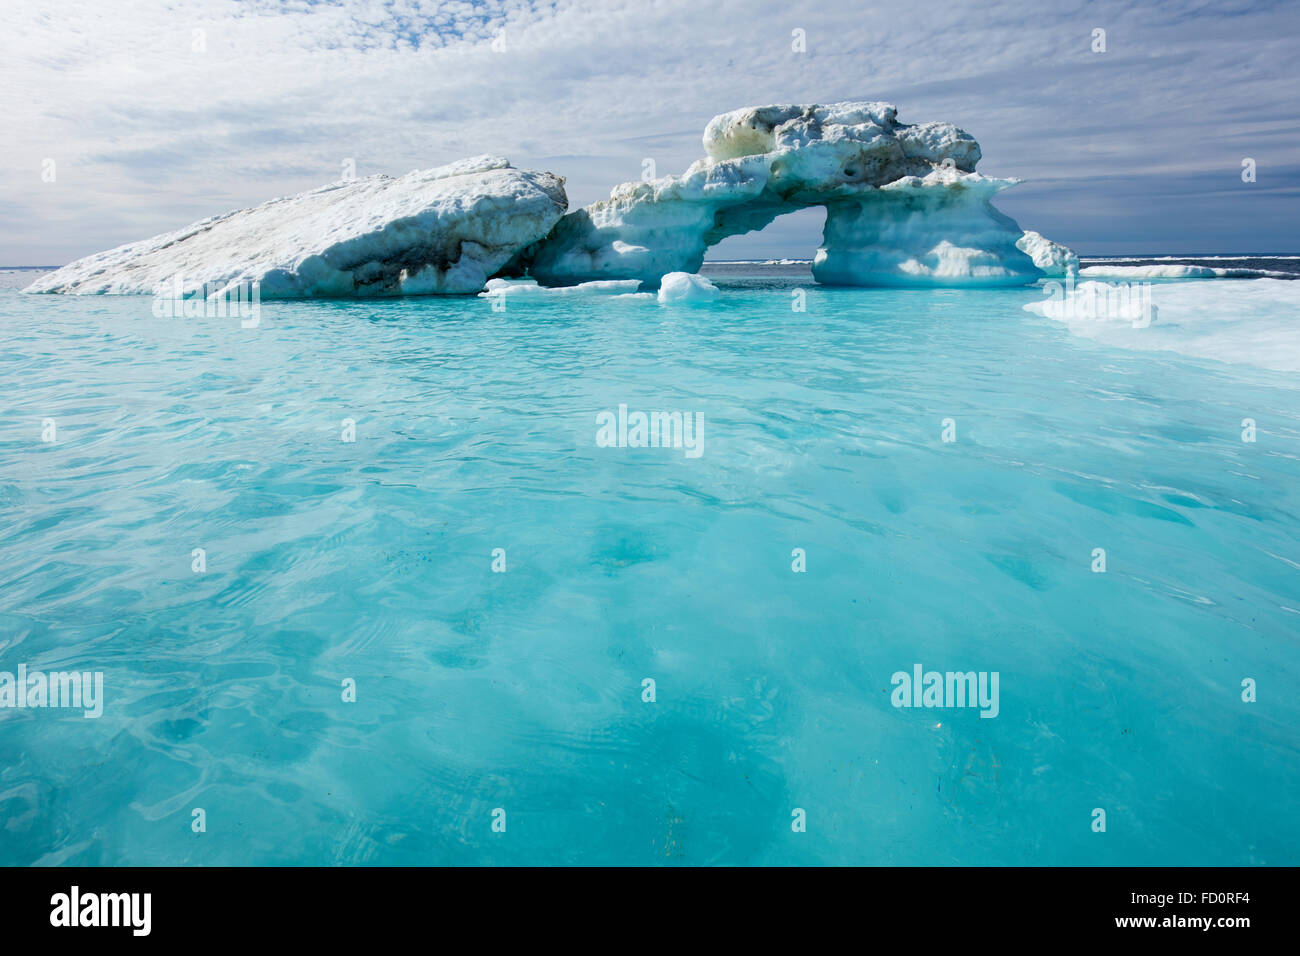 Canada, Nunavut Territory, Repulse Bay, Melting icebergs in Harbour Islands in Hudson Bay just south of arctic circle - Stock Image